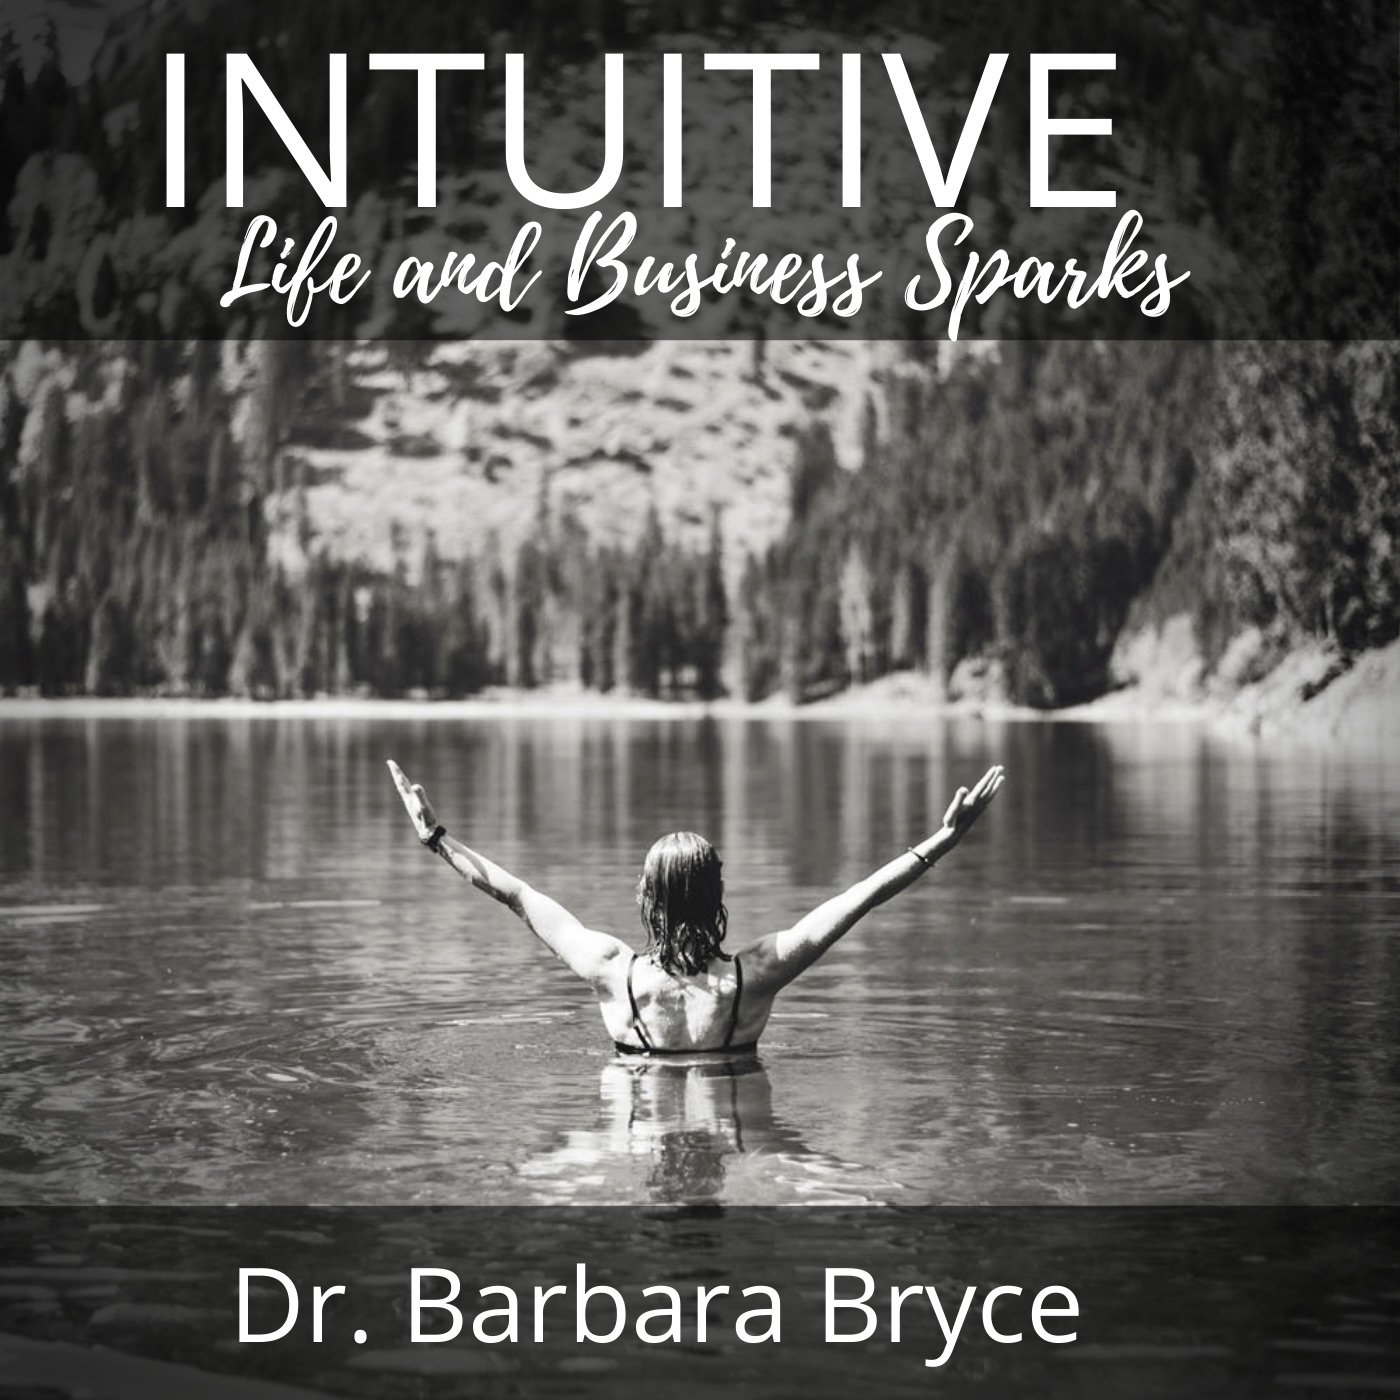 Intuitive Life and Business Sparks - reconnect to your intuition with Dr. Barbara Bryce show art